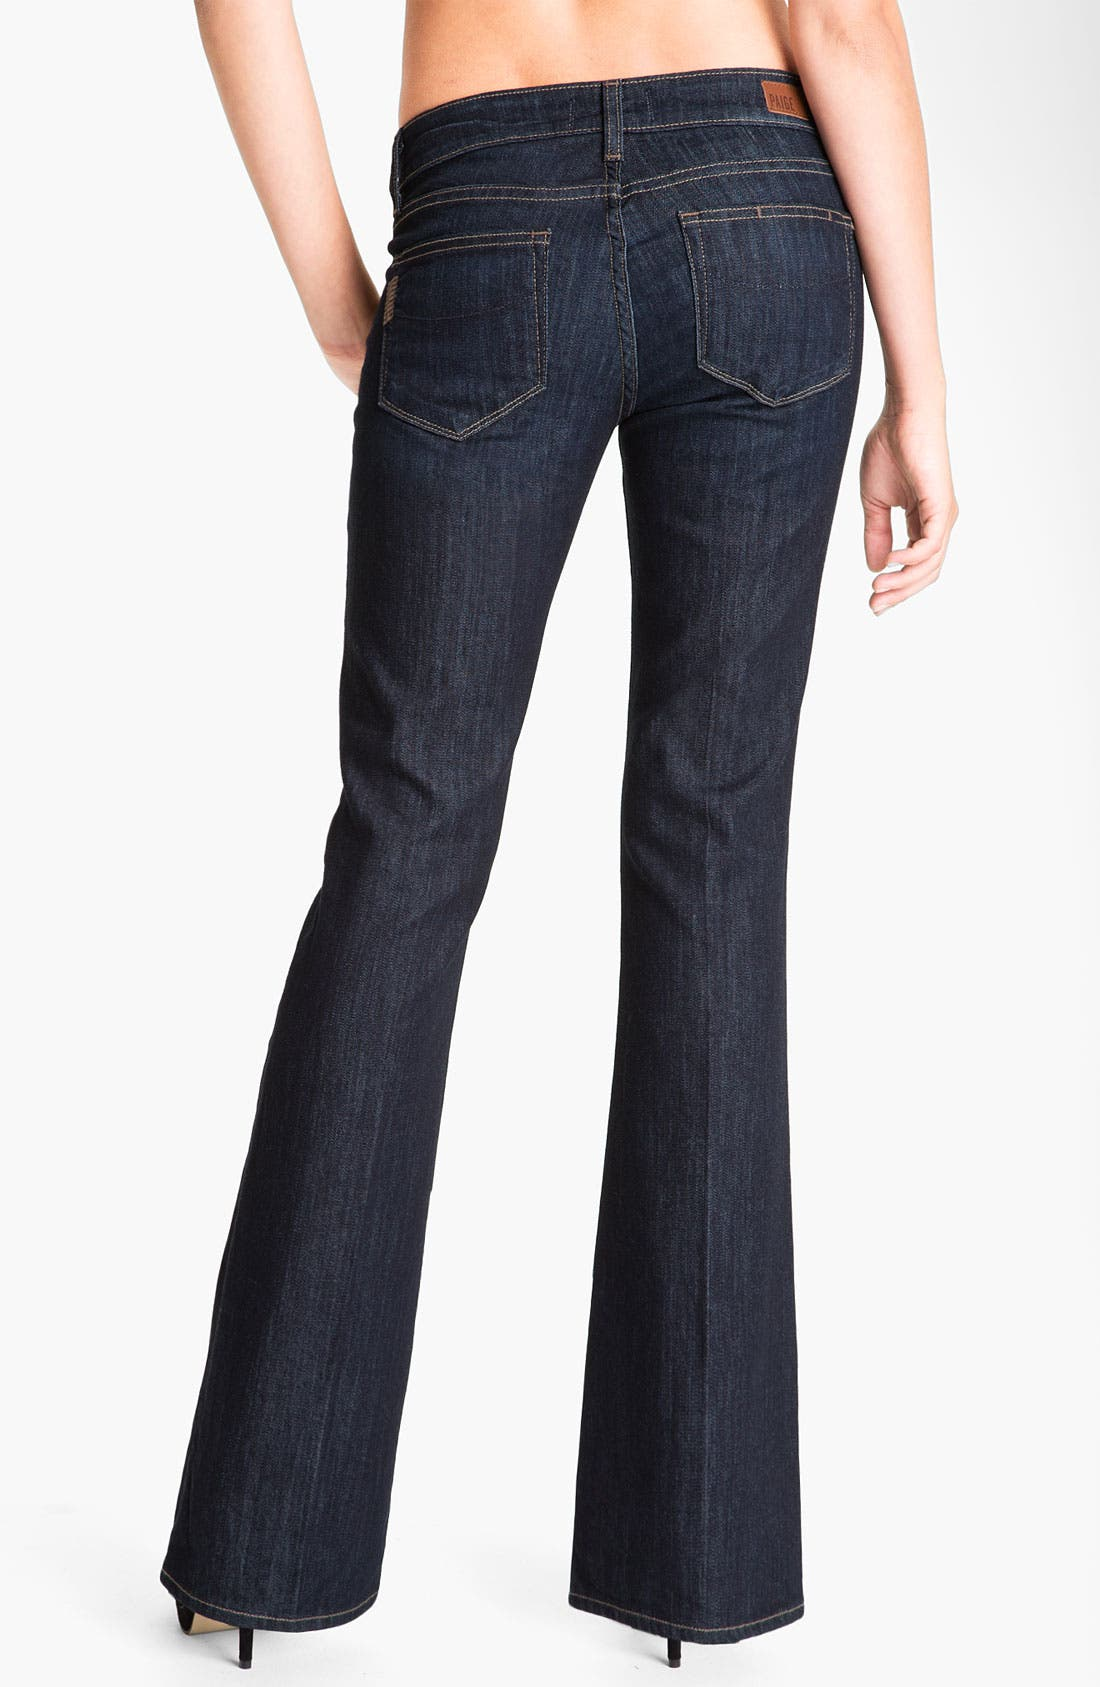 Alternate Image 2  - Paige Denim 'Skyline' Bootcut Jeans (Dream) (Petite)